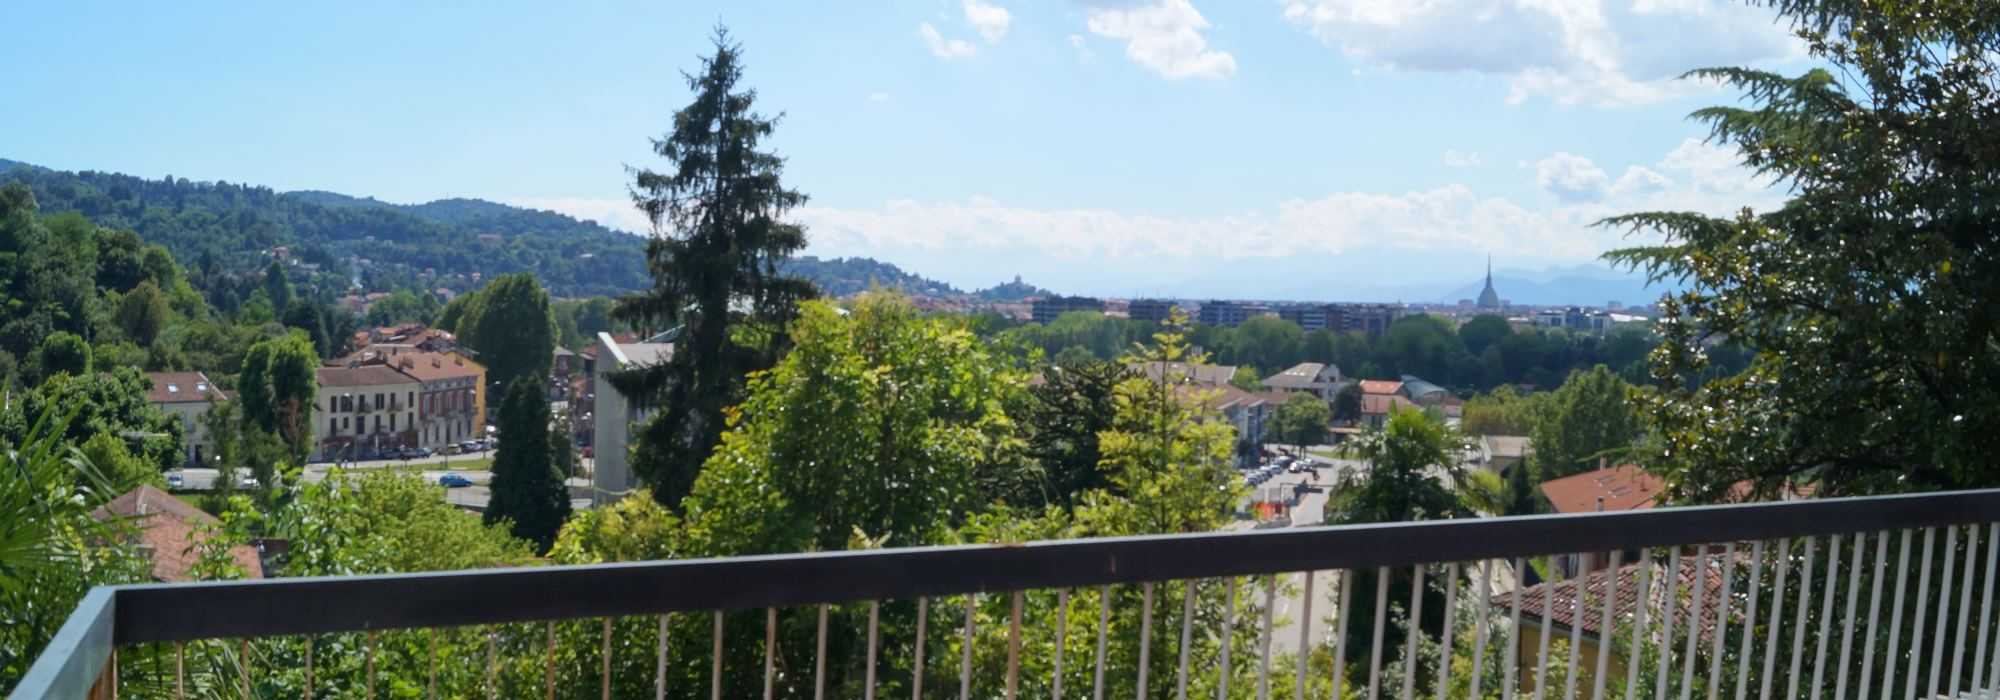 Turin – Villa Sassi area 400 sq m + private garden of 2750 sq m